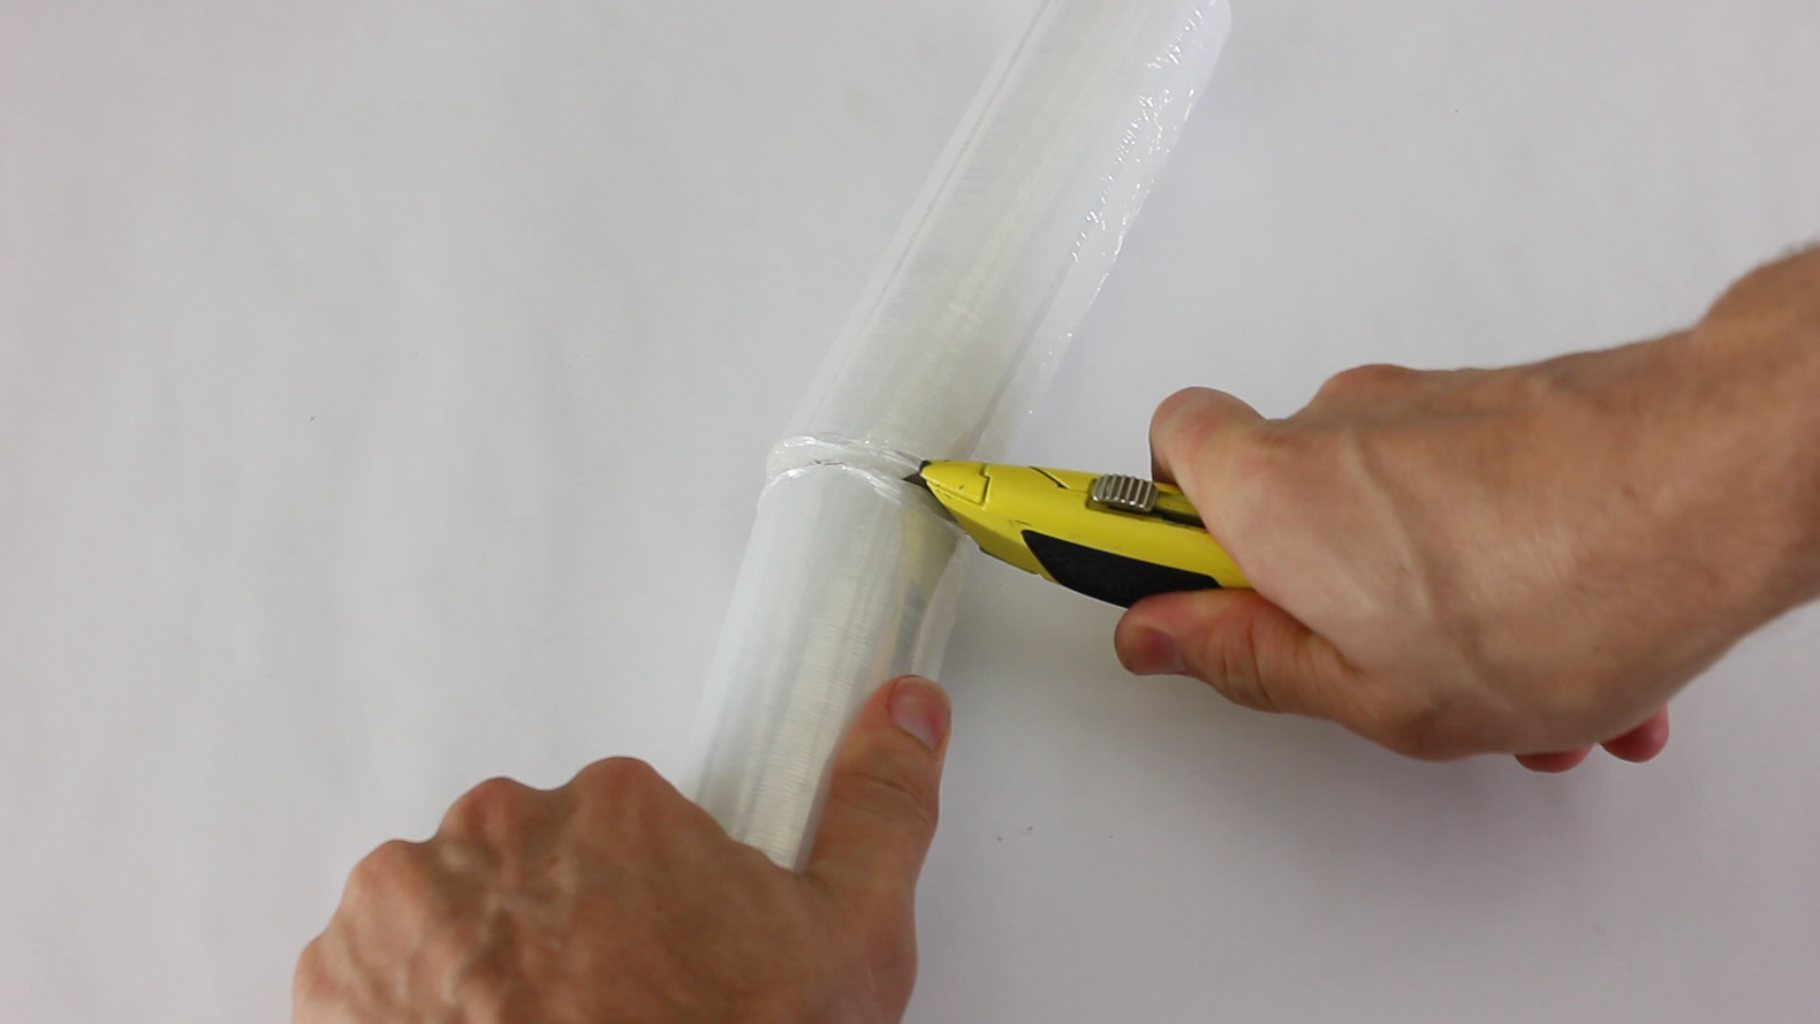 Cut the Roll of Plastic Wrap to the Desired Width (optional)